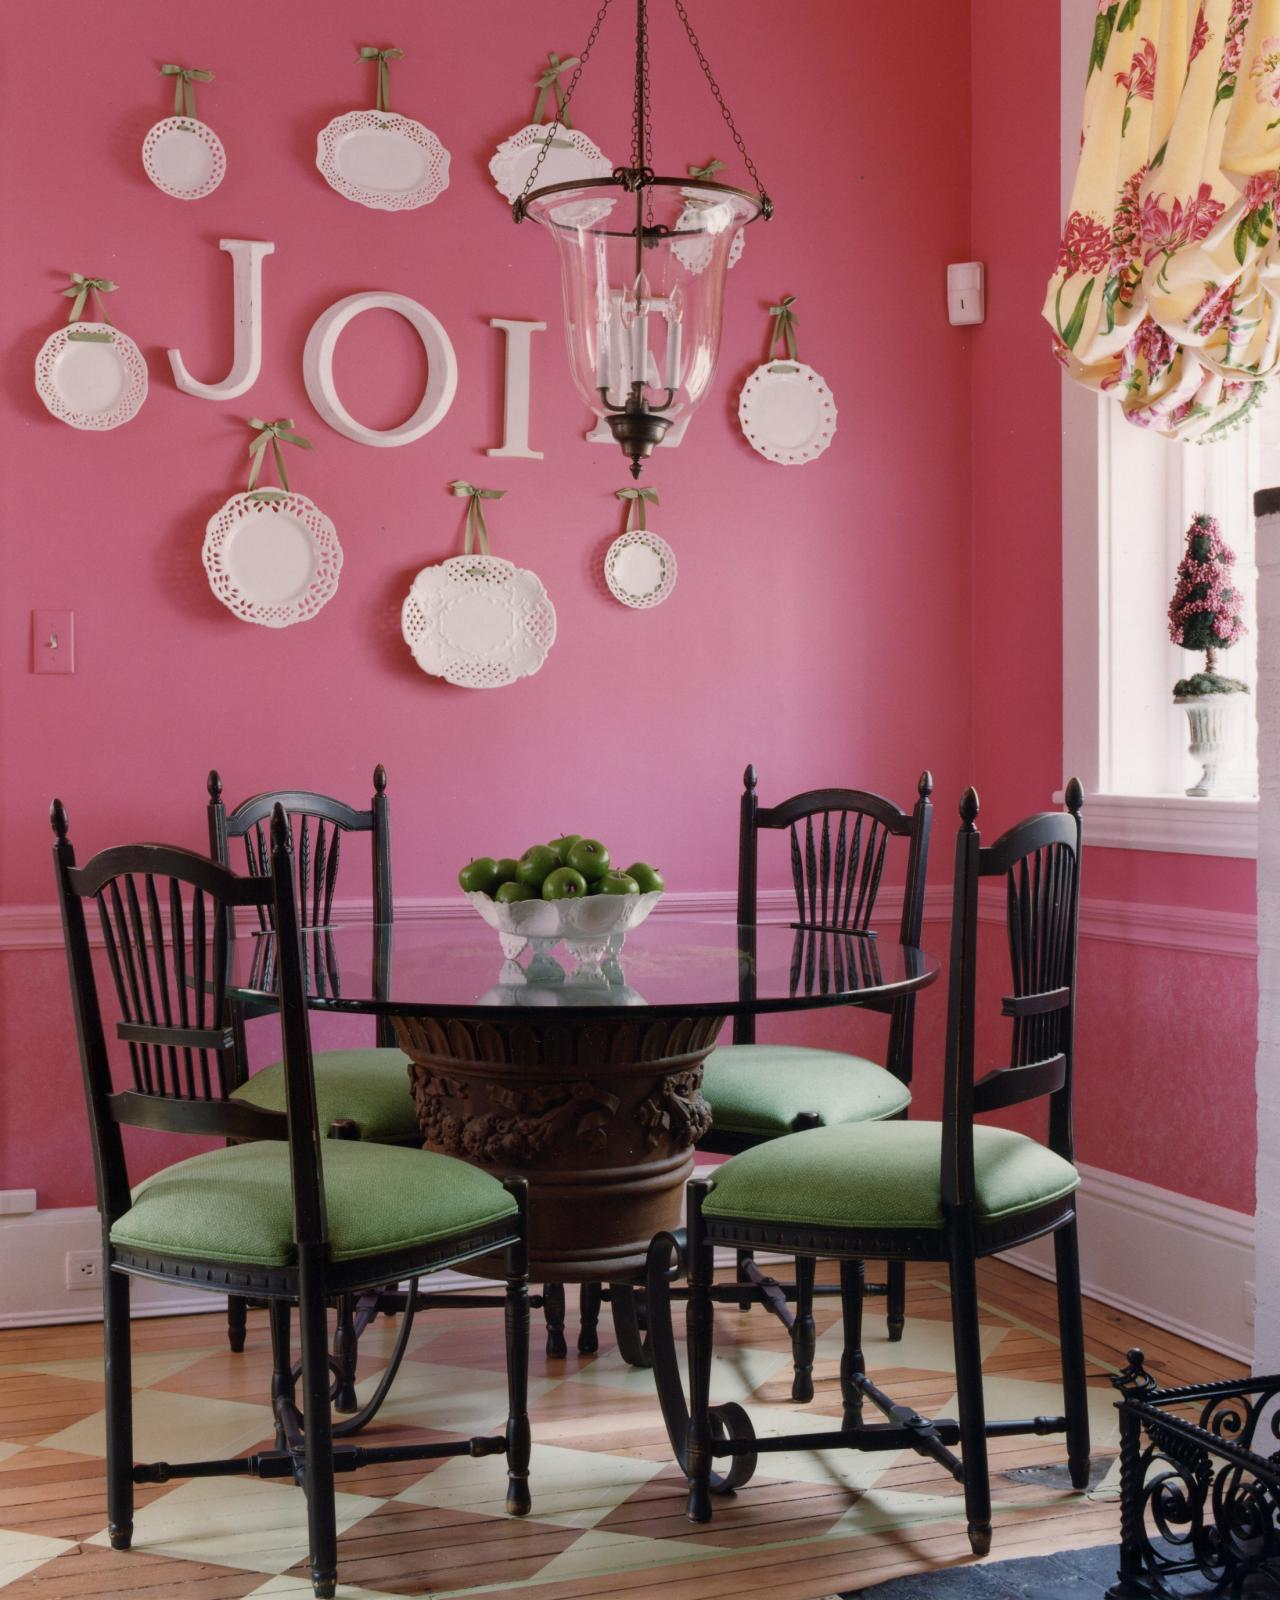 How to Choose a Color Scheme: 8 Tips to Get Started | DIY